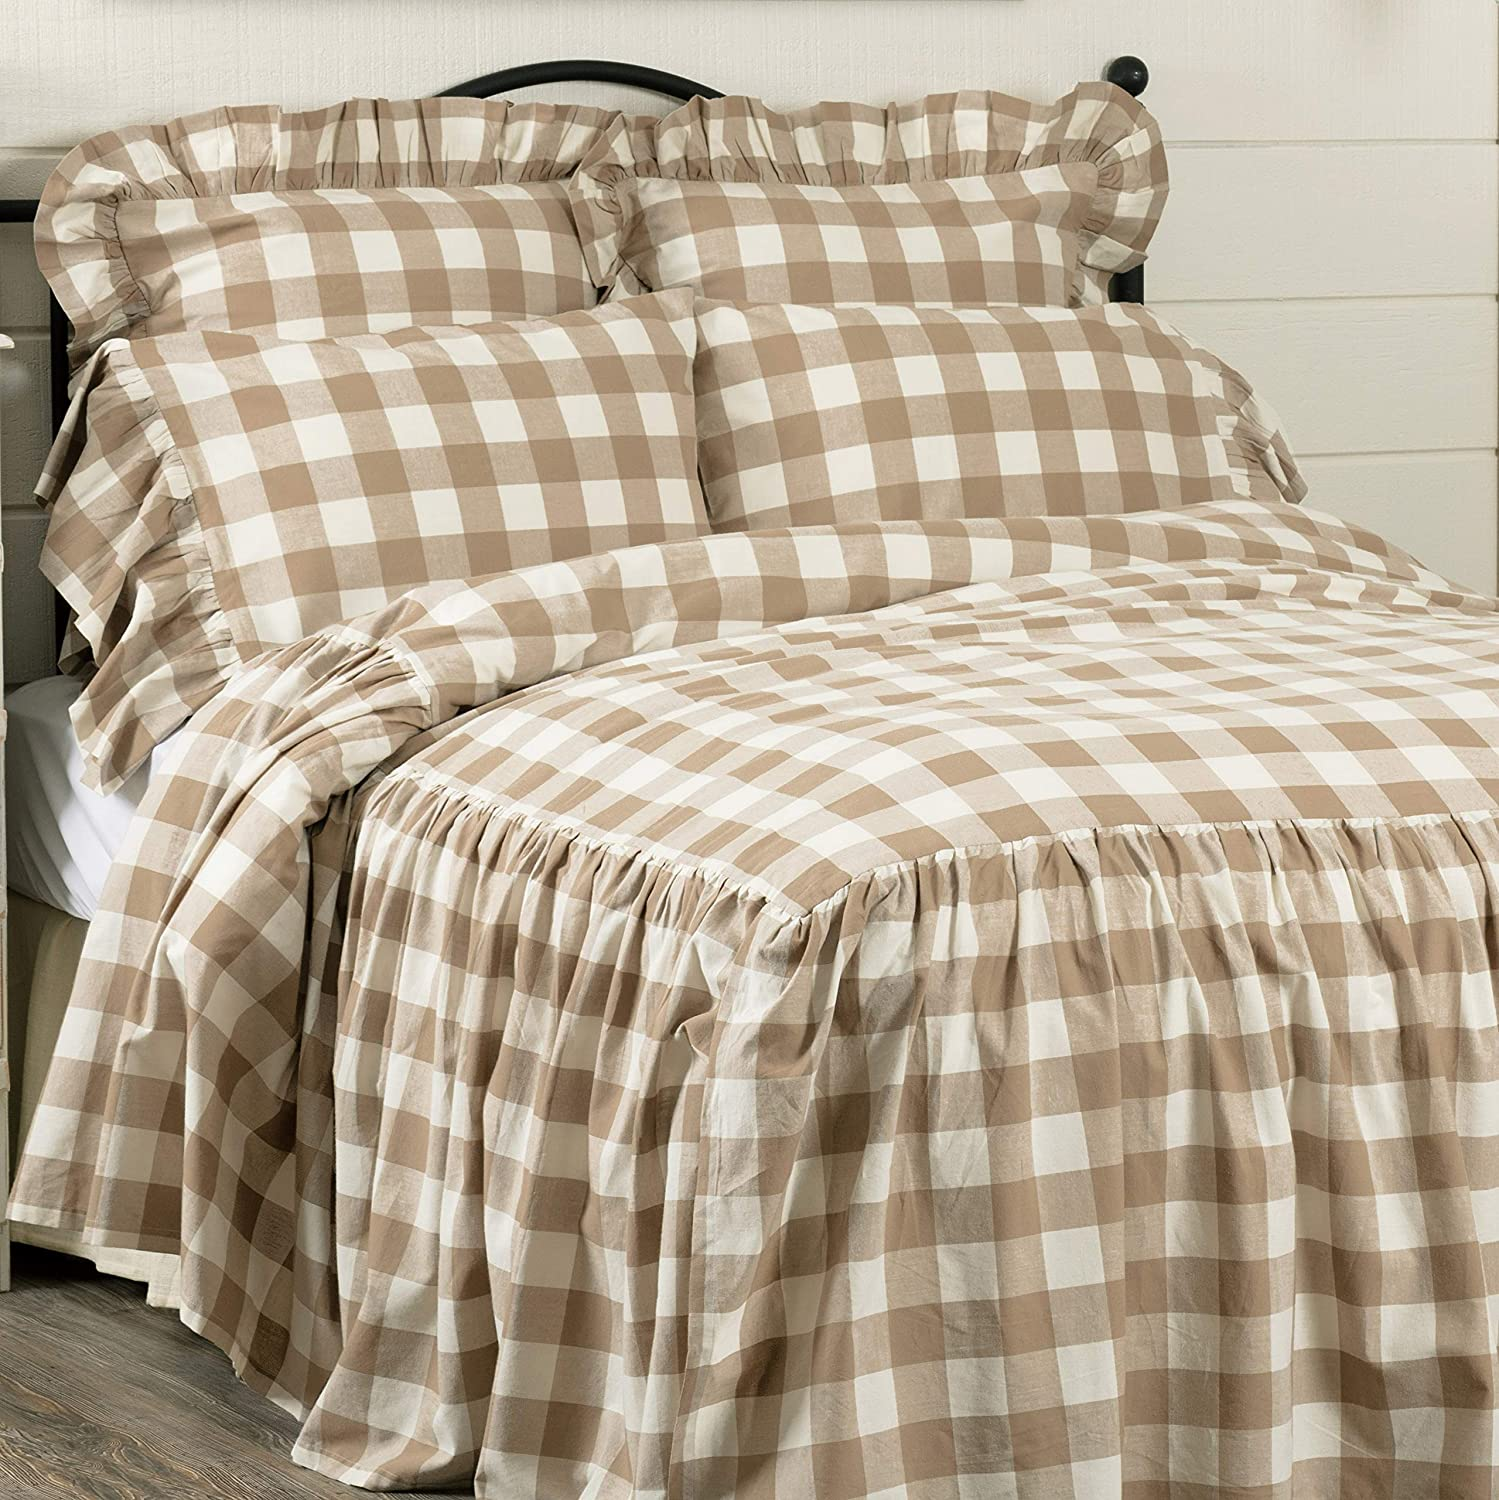 "Piper Classics Rebecca Skirted Bedspread, King Size w/ 27"" Ruffled Skirt, Taupe & Cream Buffalo Check, Vintage Farmhouse or Country Cottage Bedding"